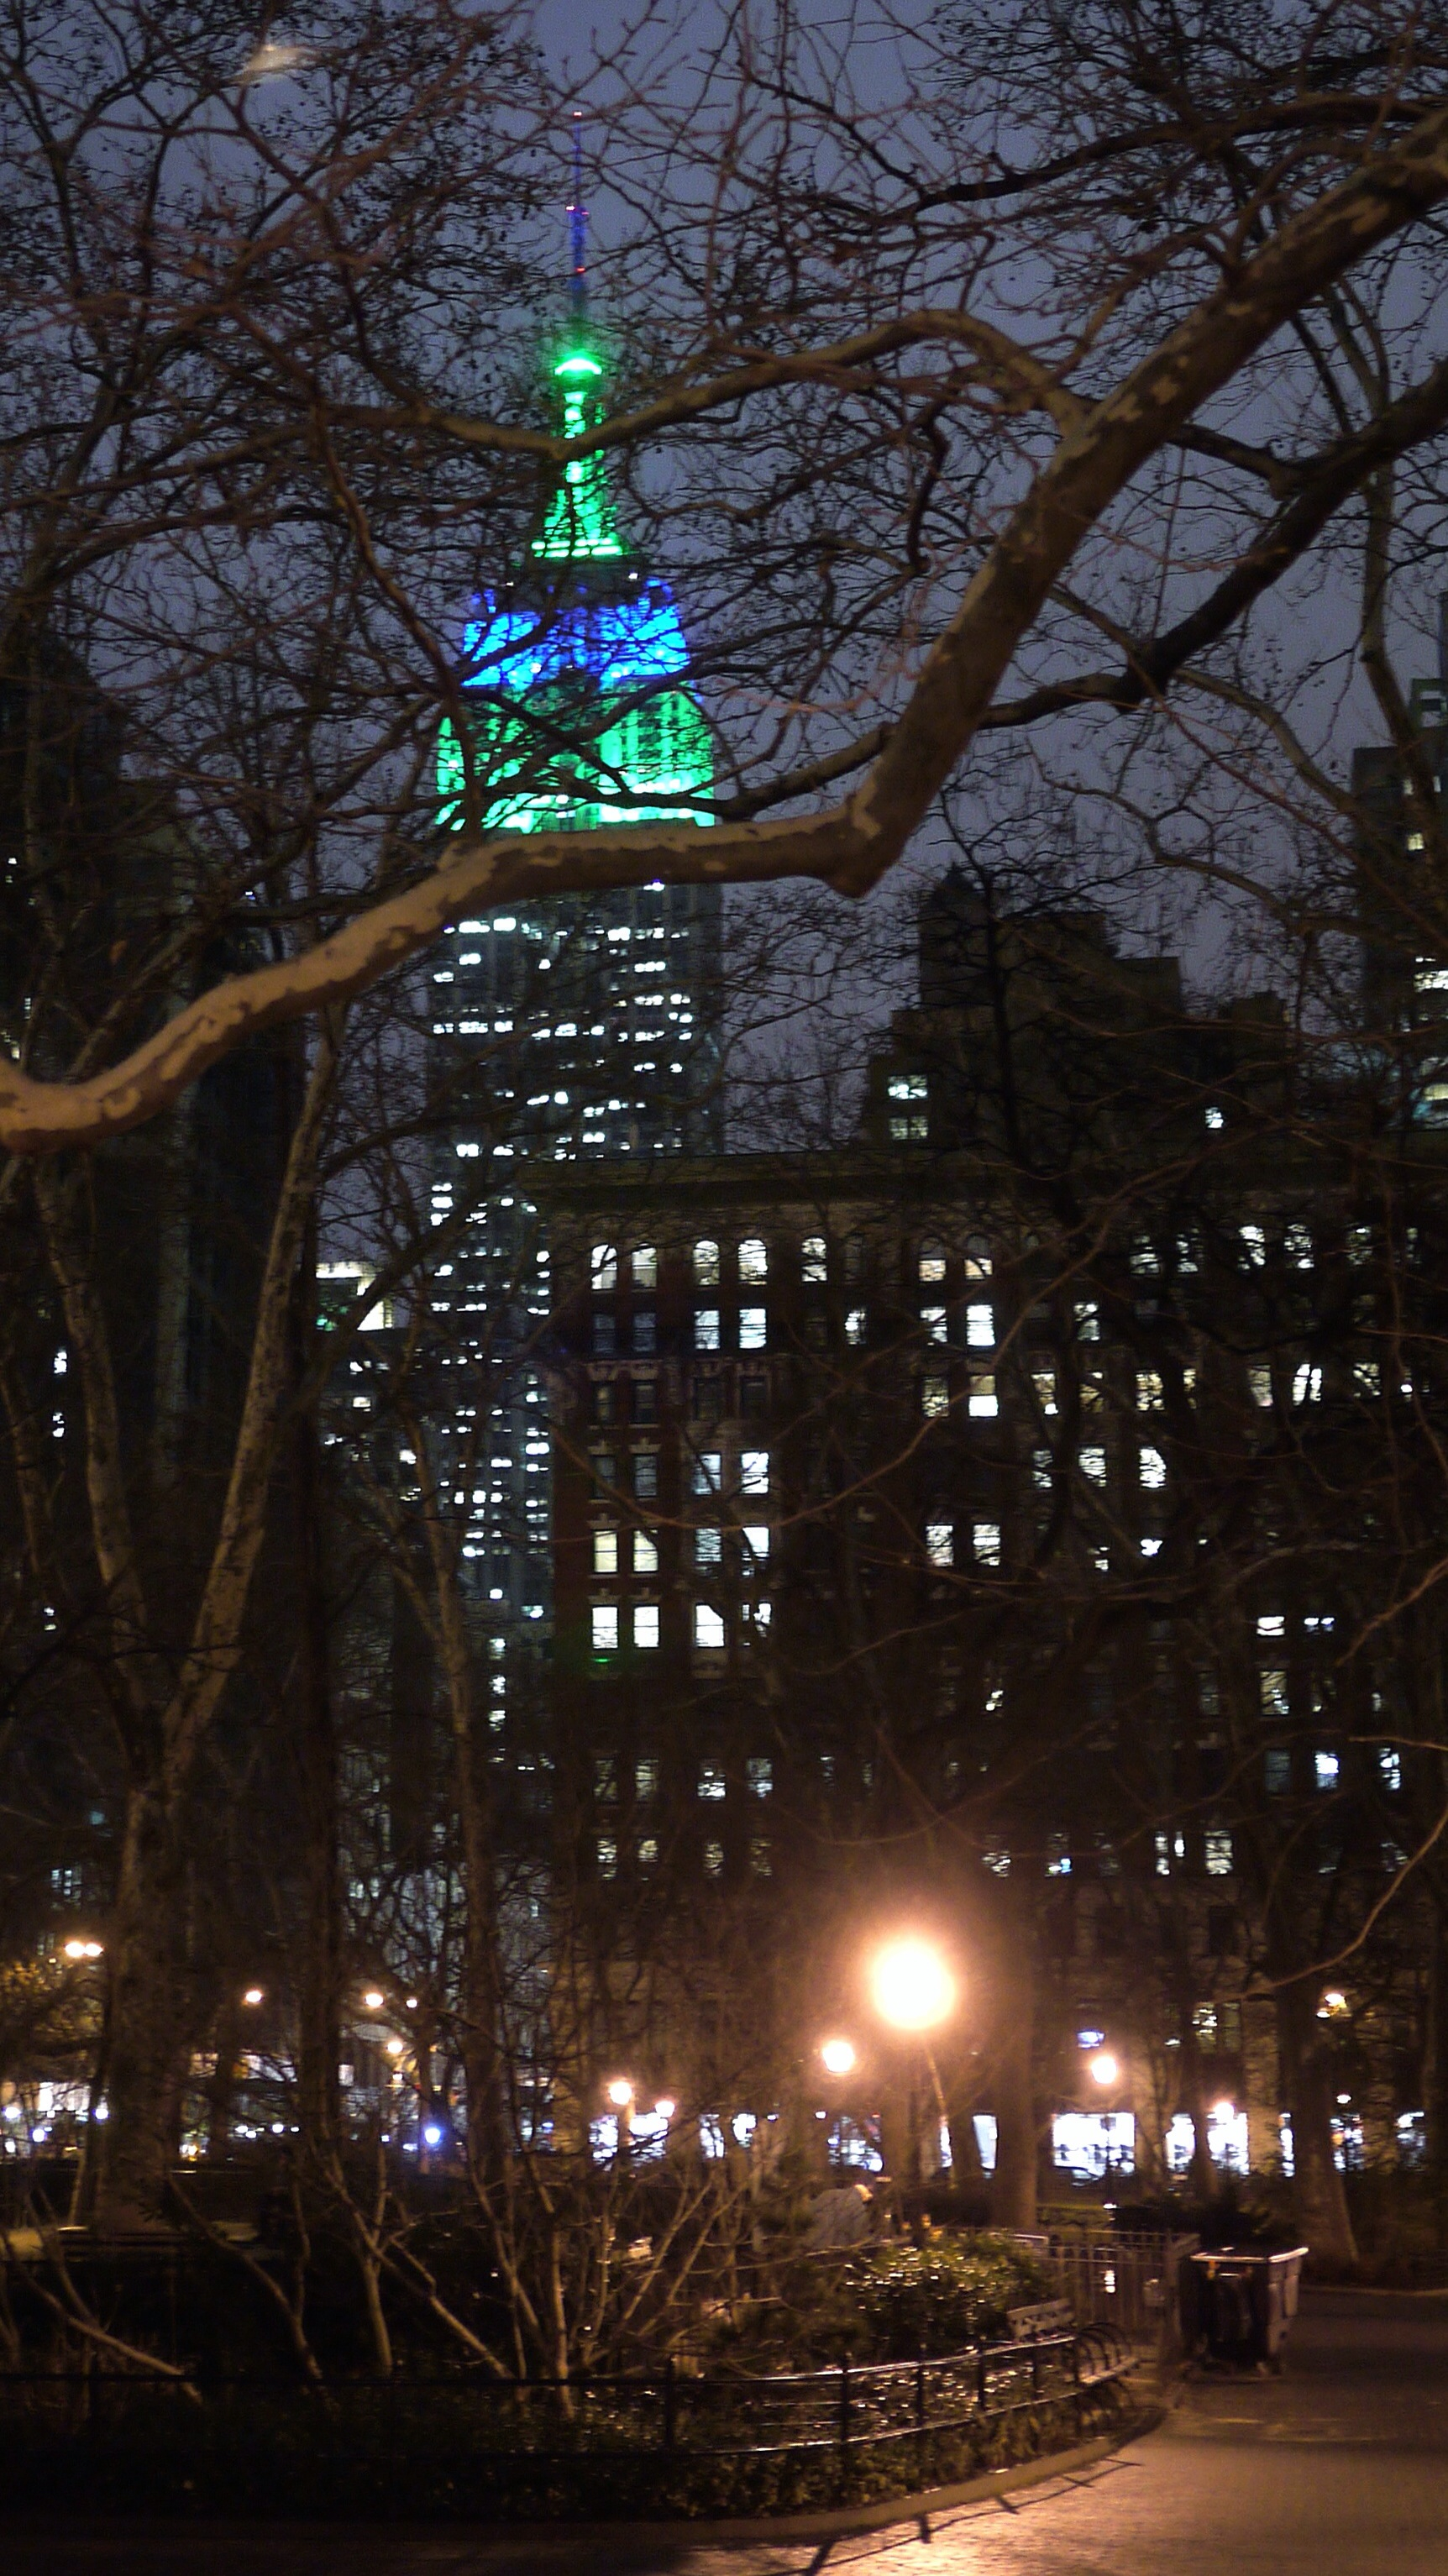 ESB South looking North from Madison Square Park